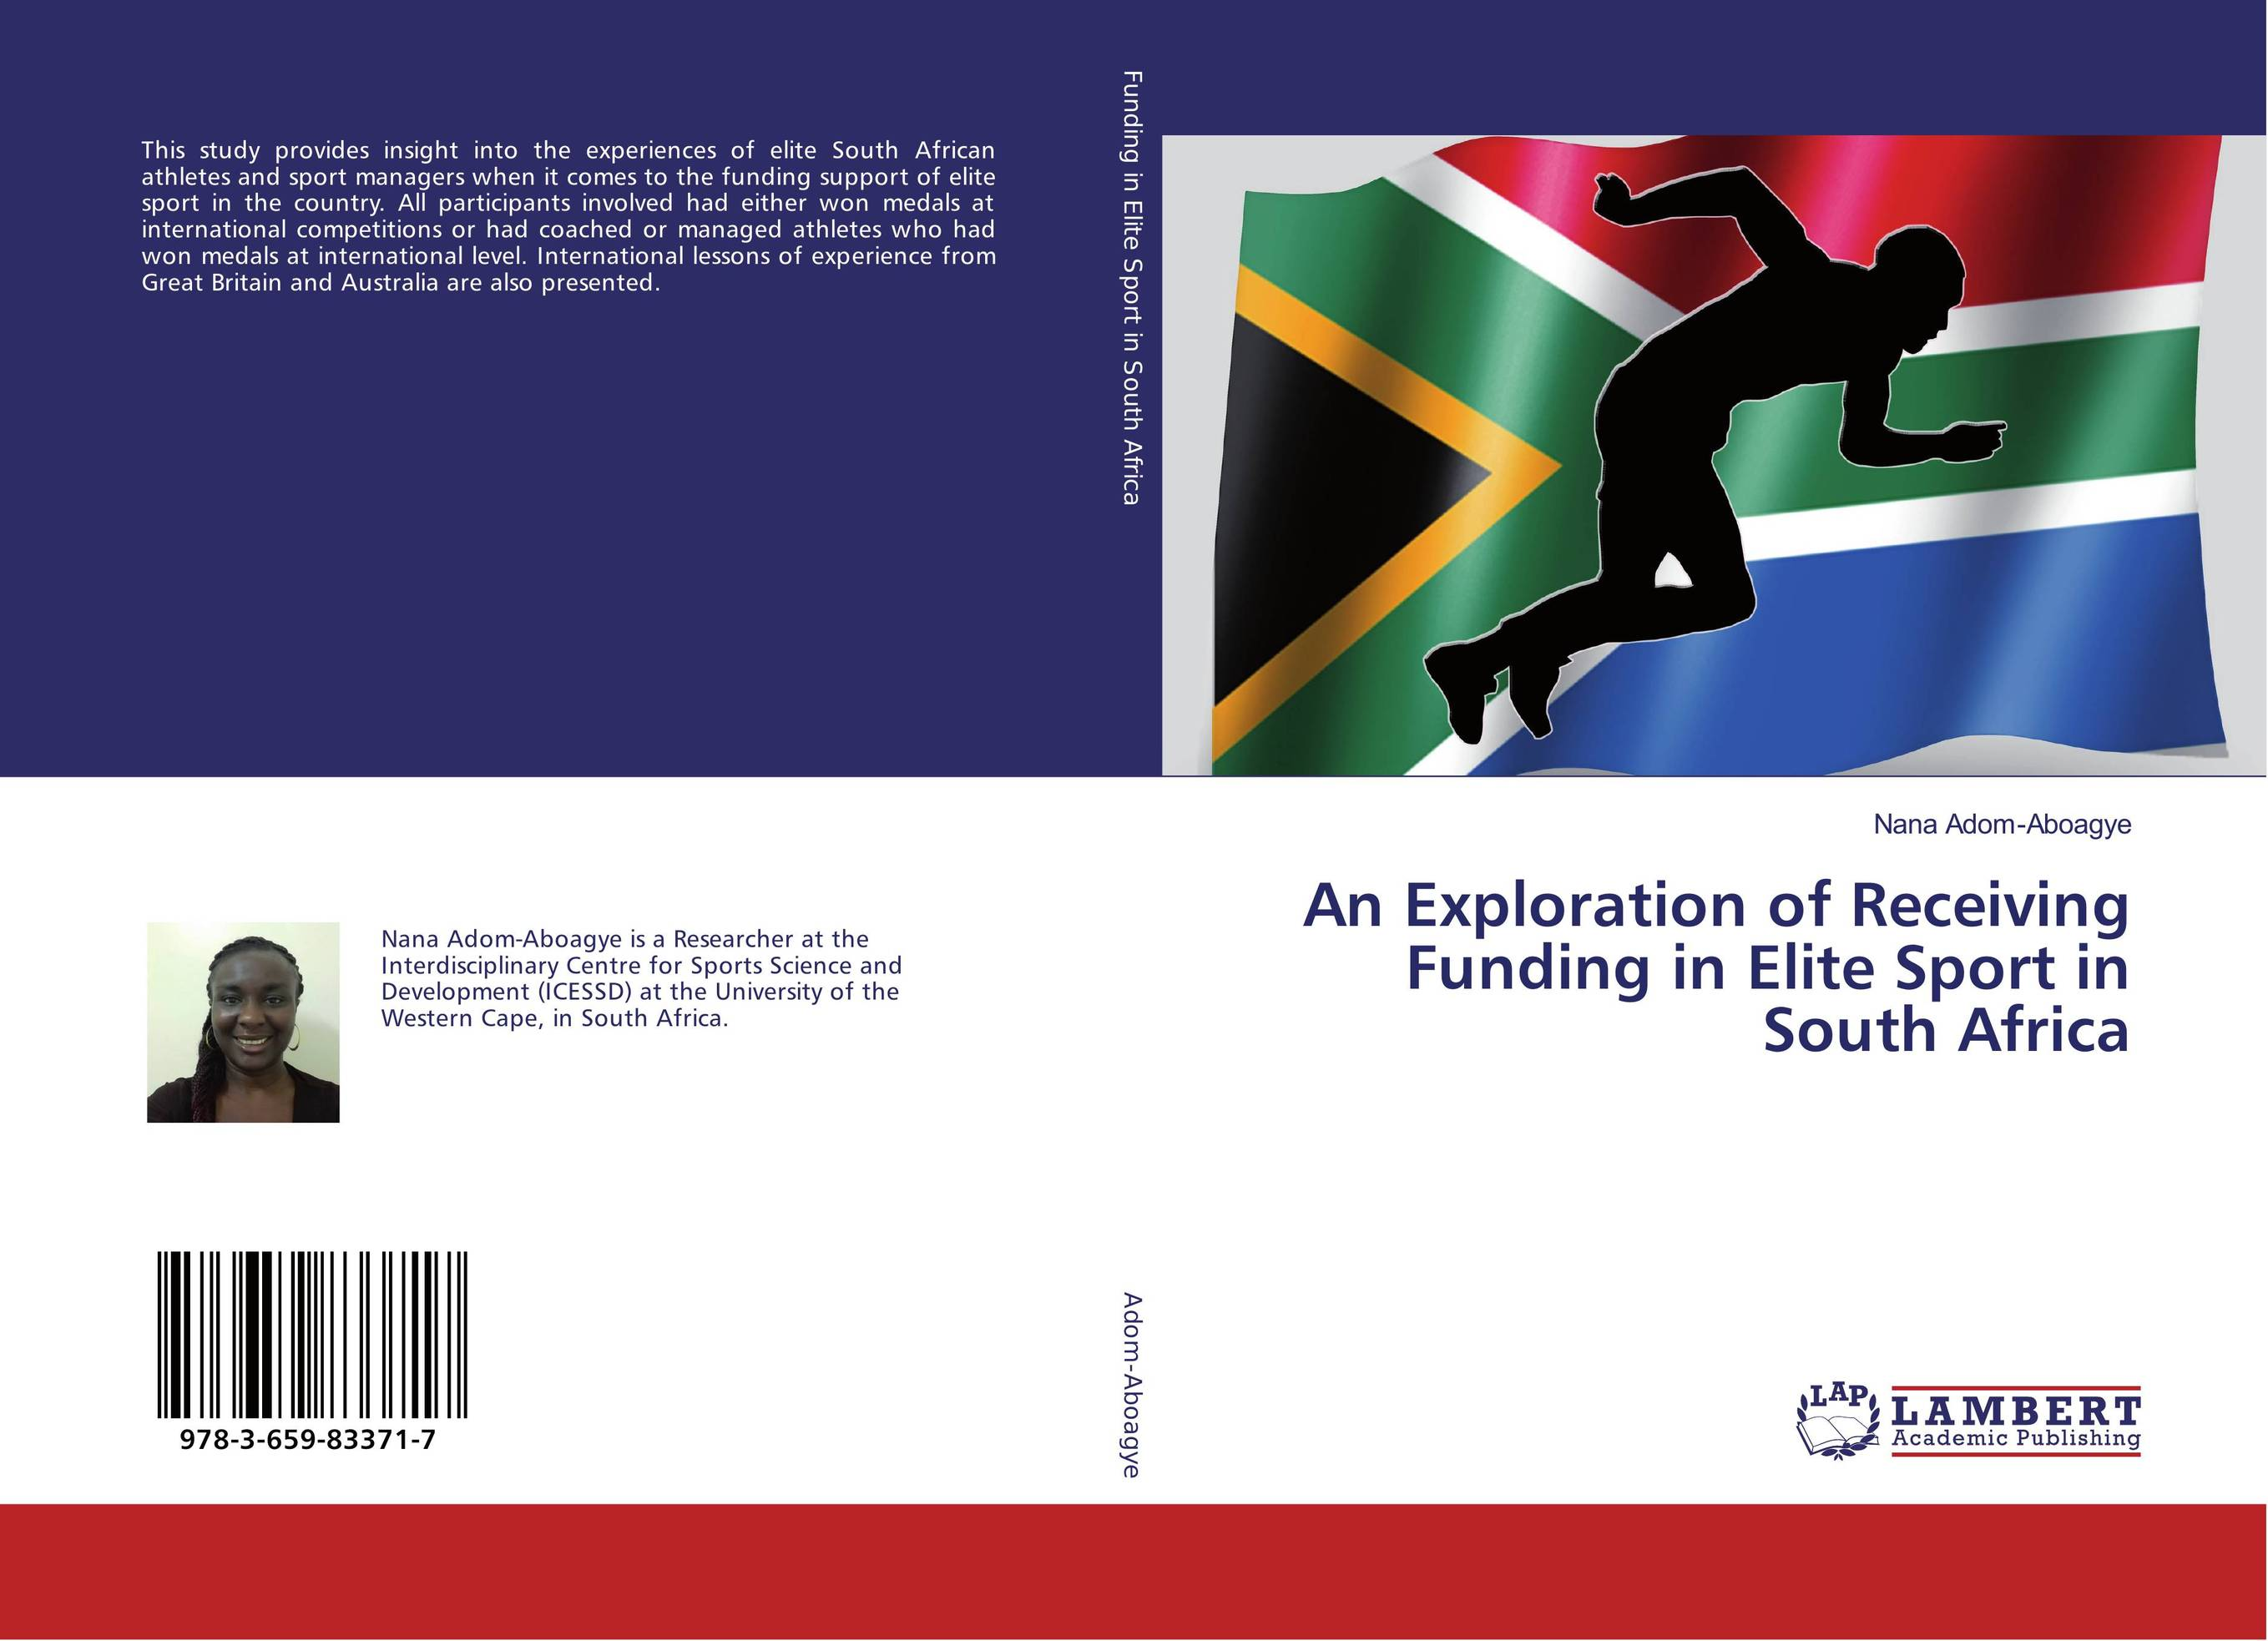 An Exploration of Receiving Funding in Elite Sport in South Africa south african mnes in africa